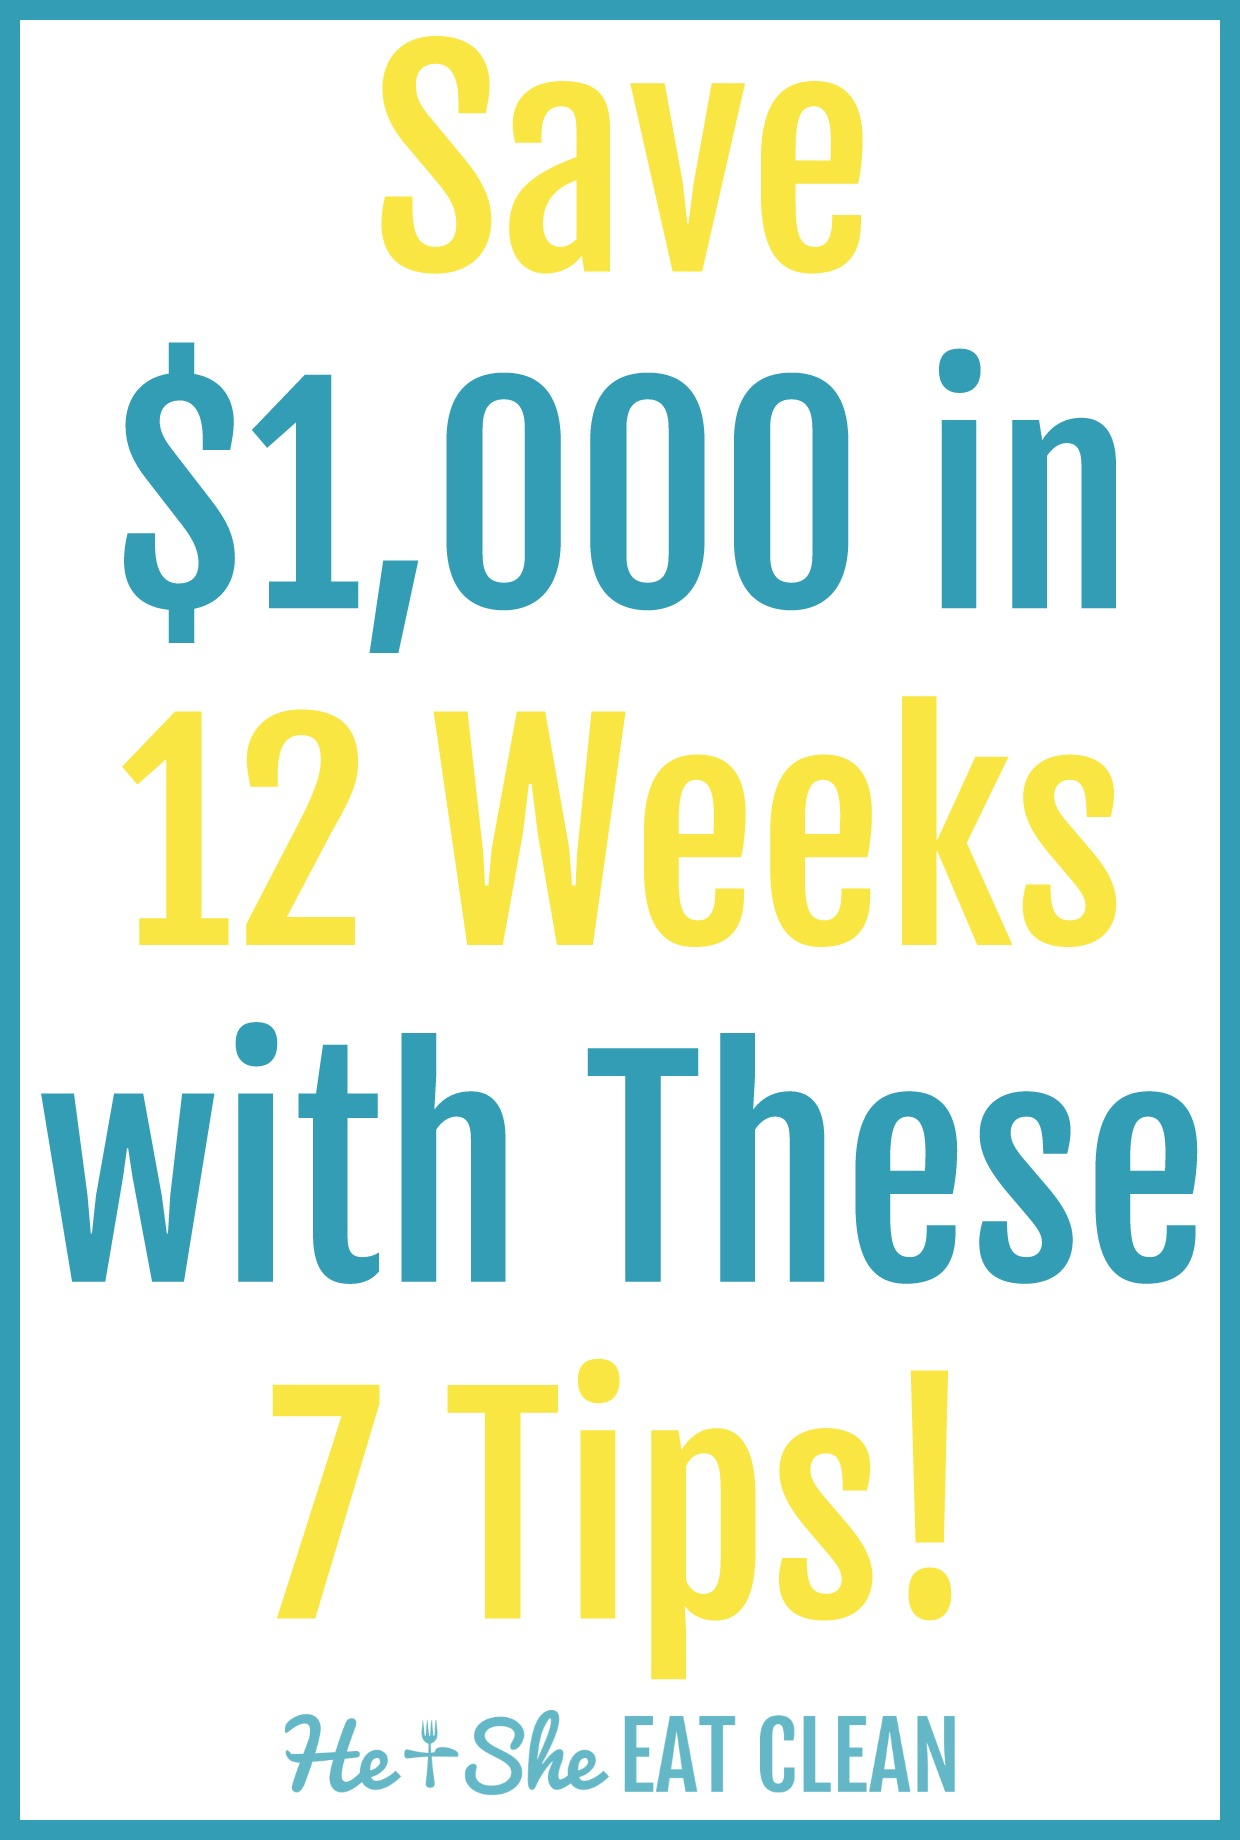 12-week-money-saving-challenge-he-and-she-eat-clean-frugal-goals-lifestyle-how-does-she-7-tips